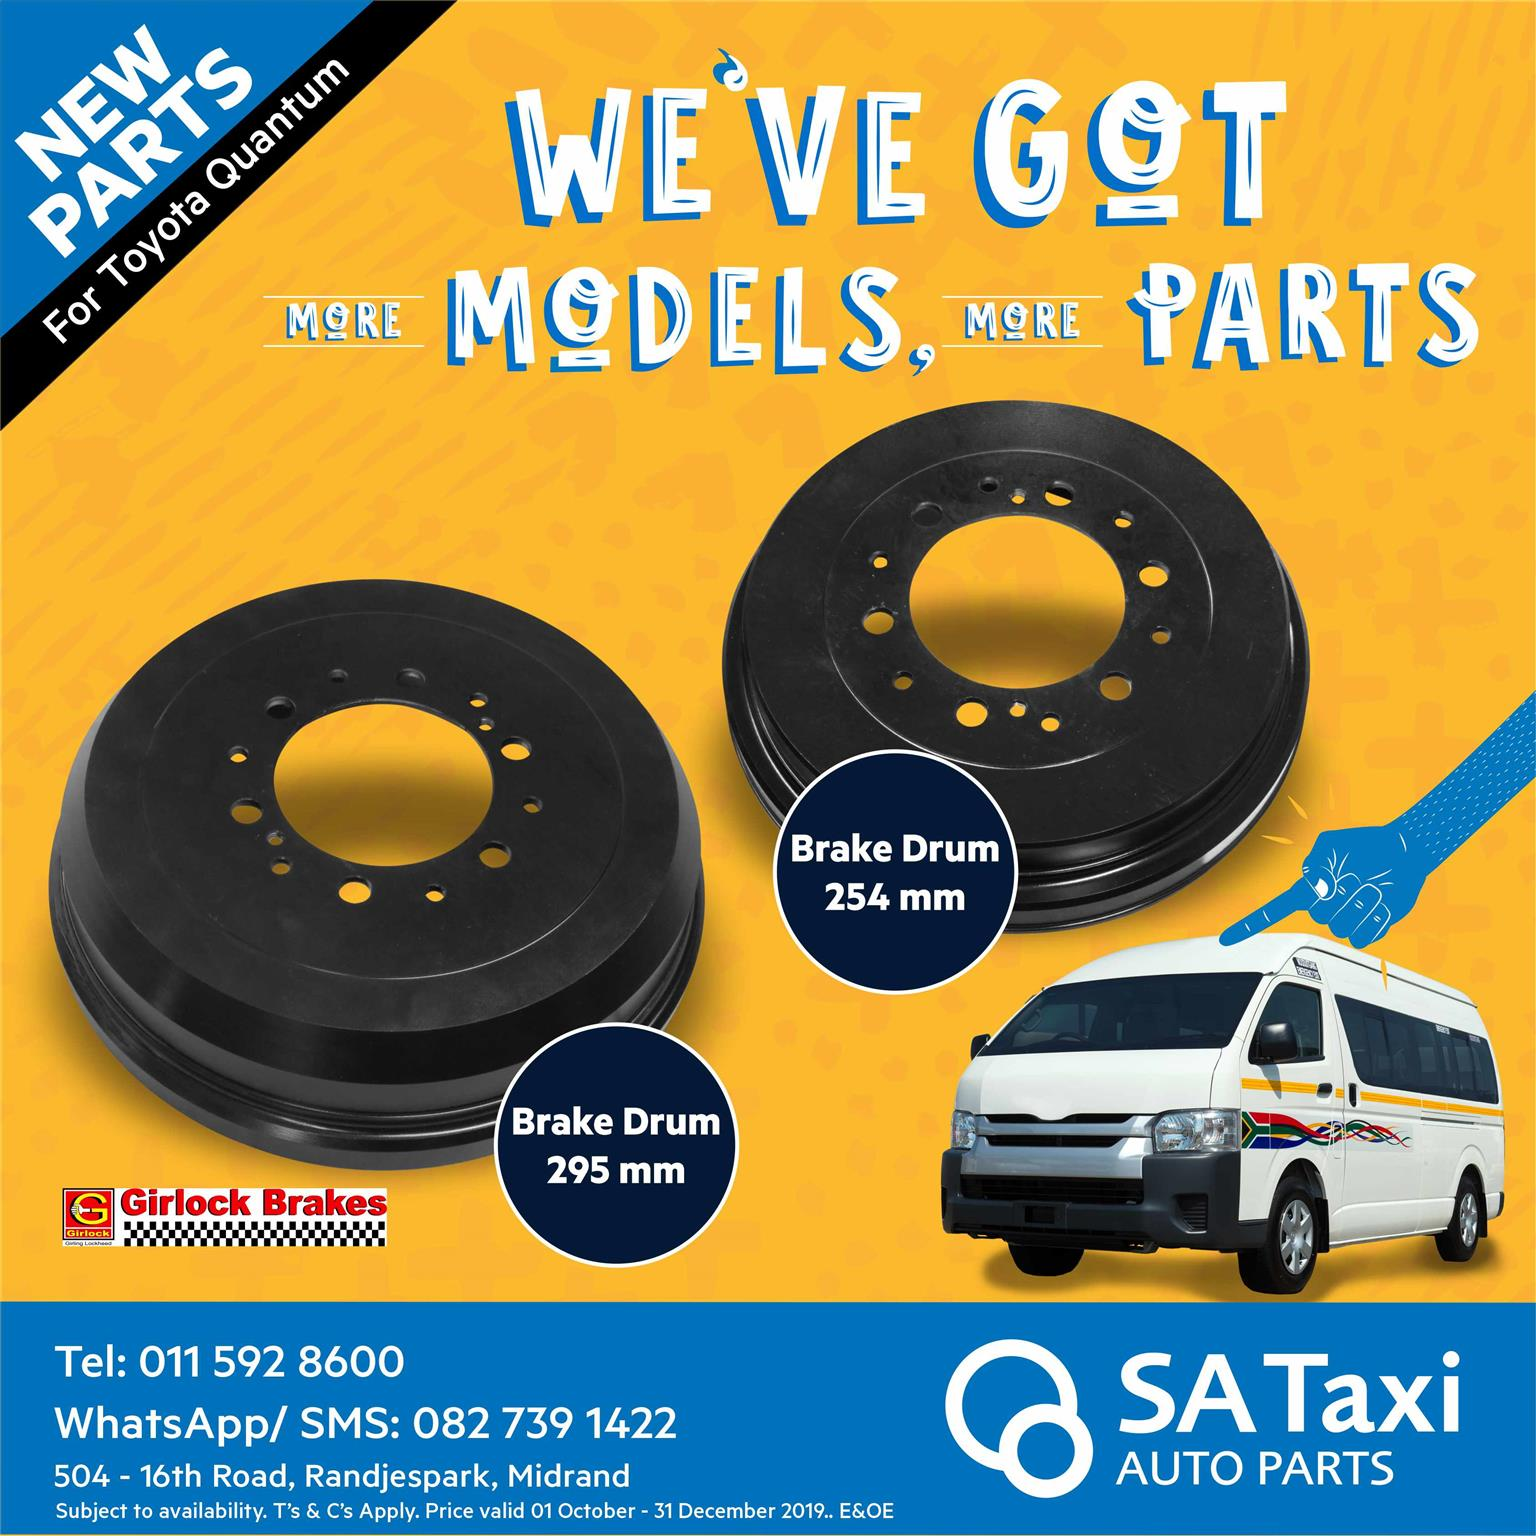 New 254mm Brake Drum suitable for Toyota Quantum - SA Taxi Auto Parts quality spares